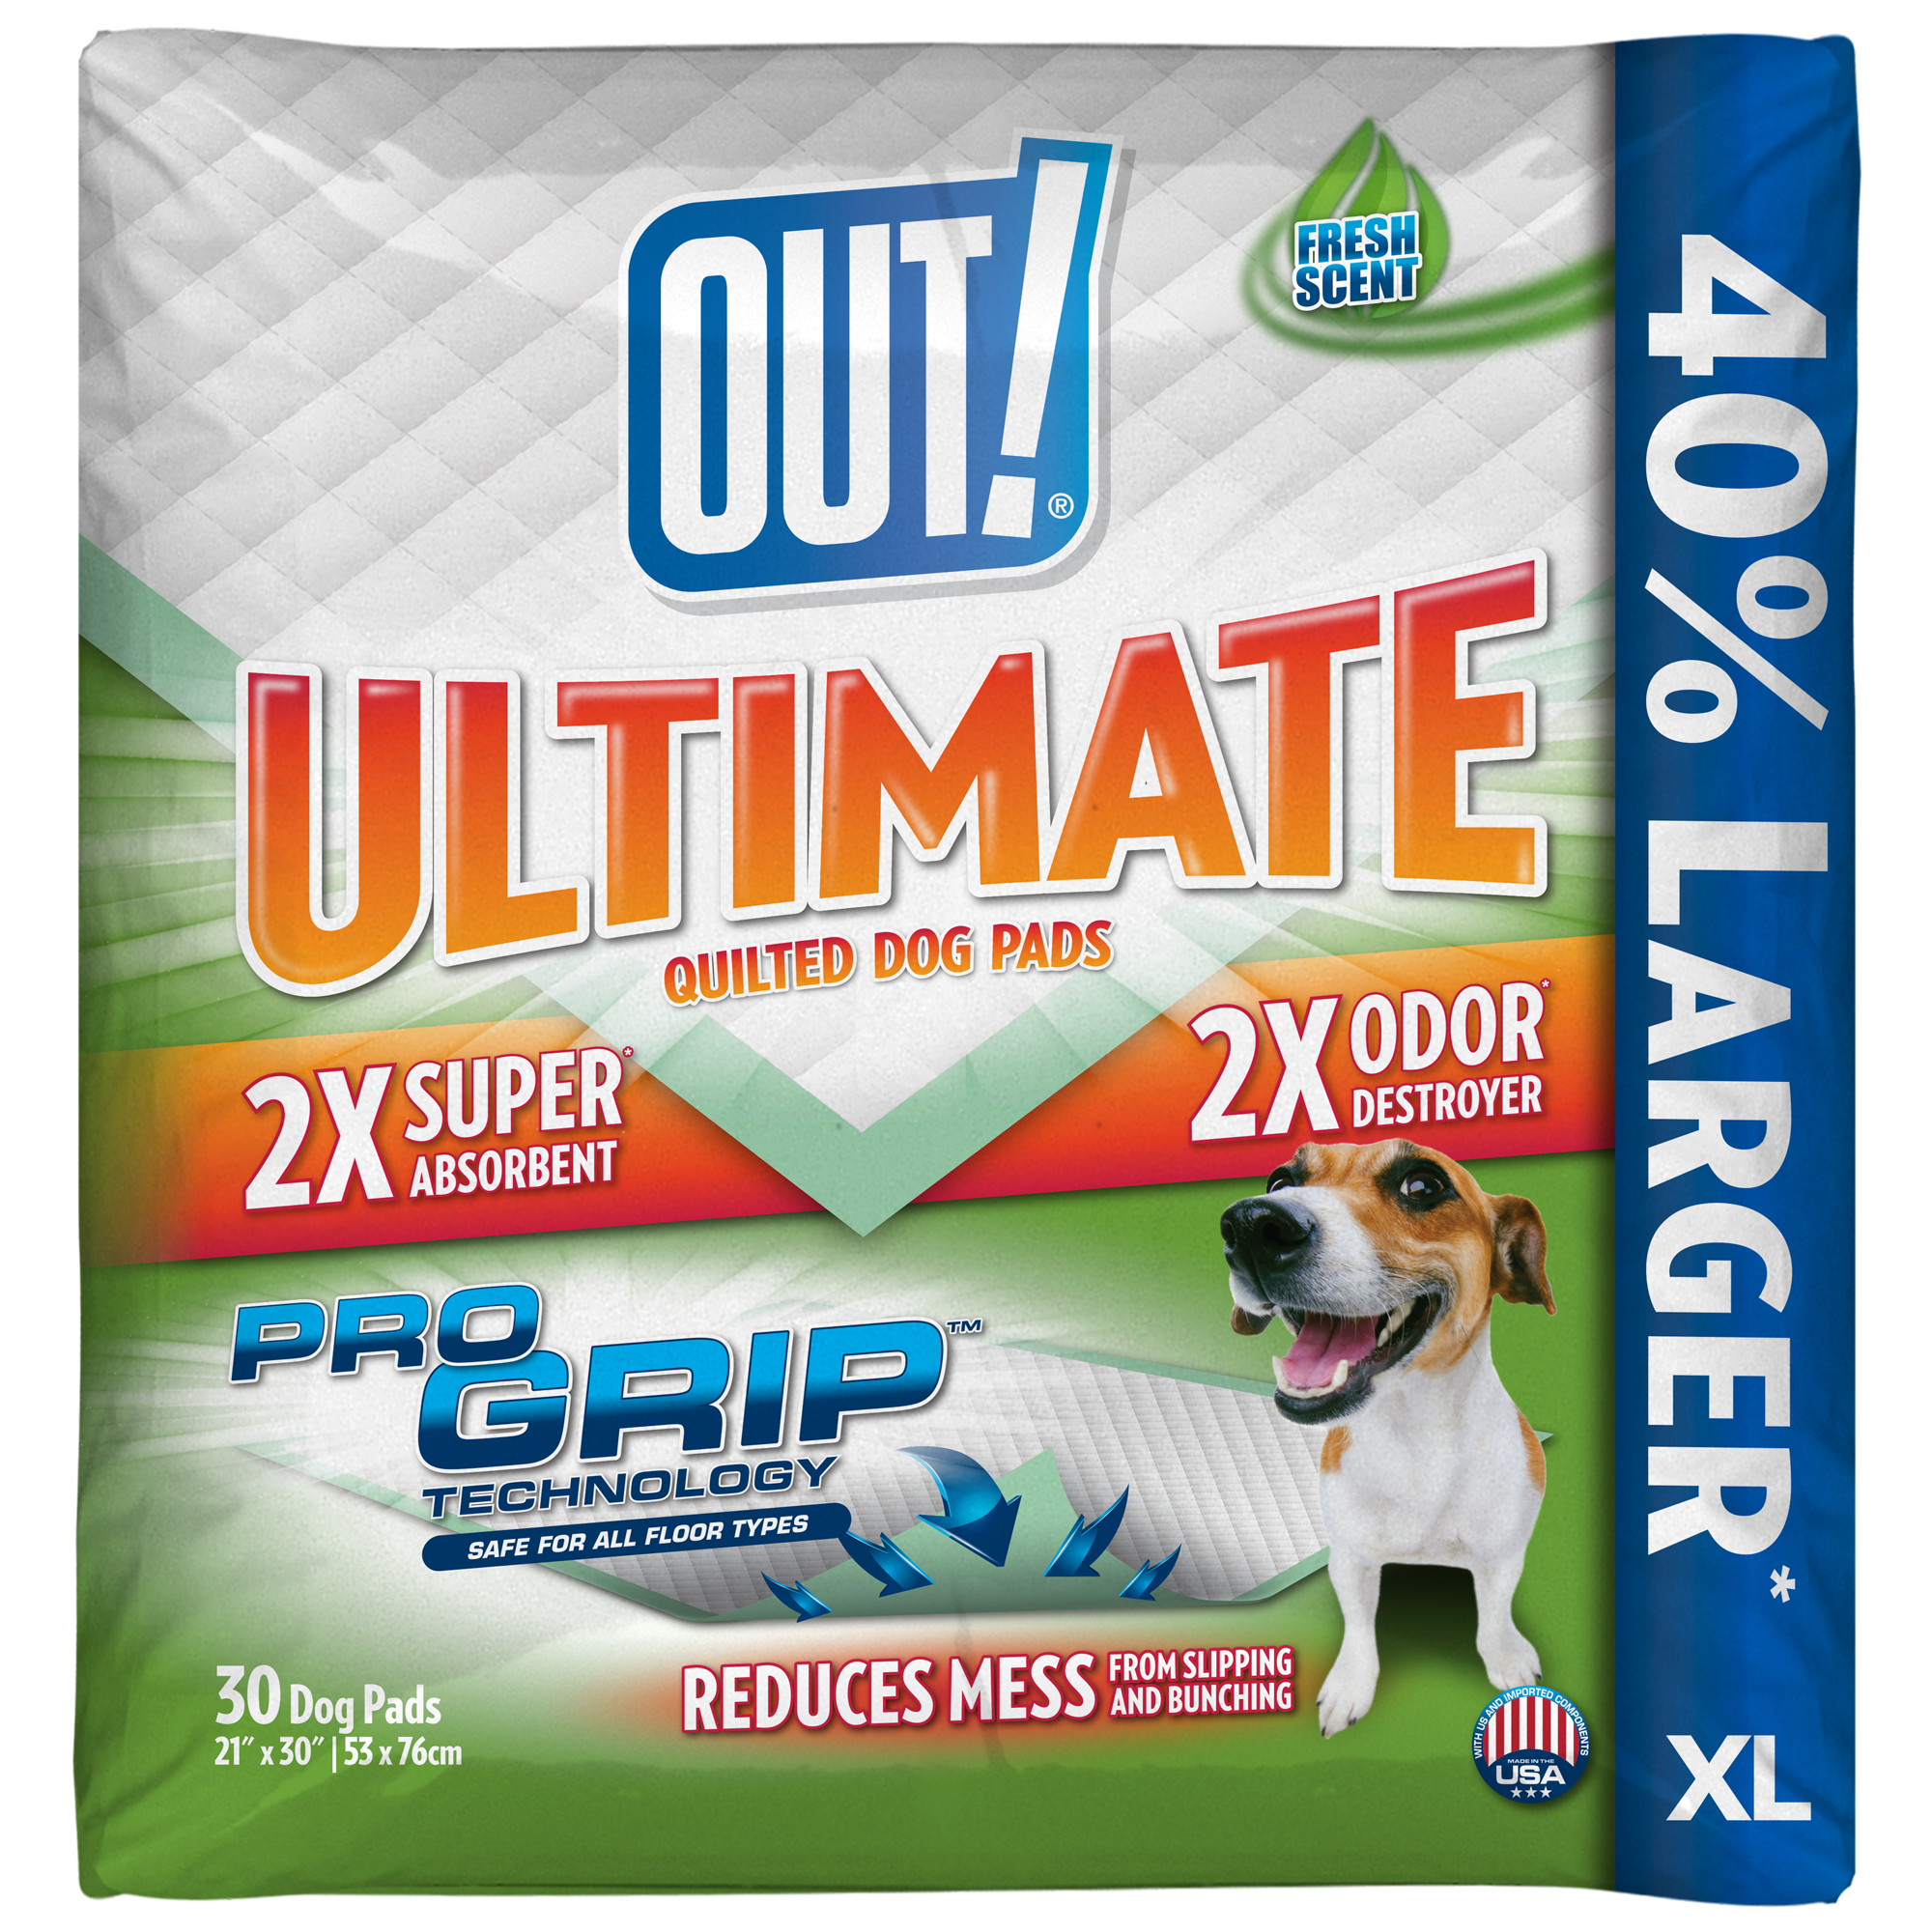 OUT! Ultimate Pro-Grip XL Dog Pads, 21 x 30, 30 pads